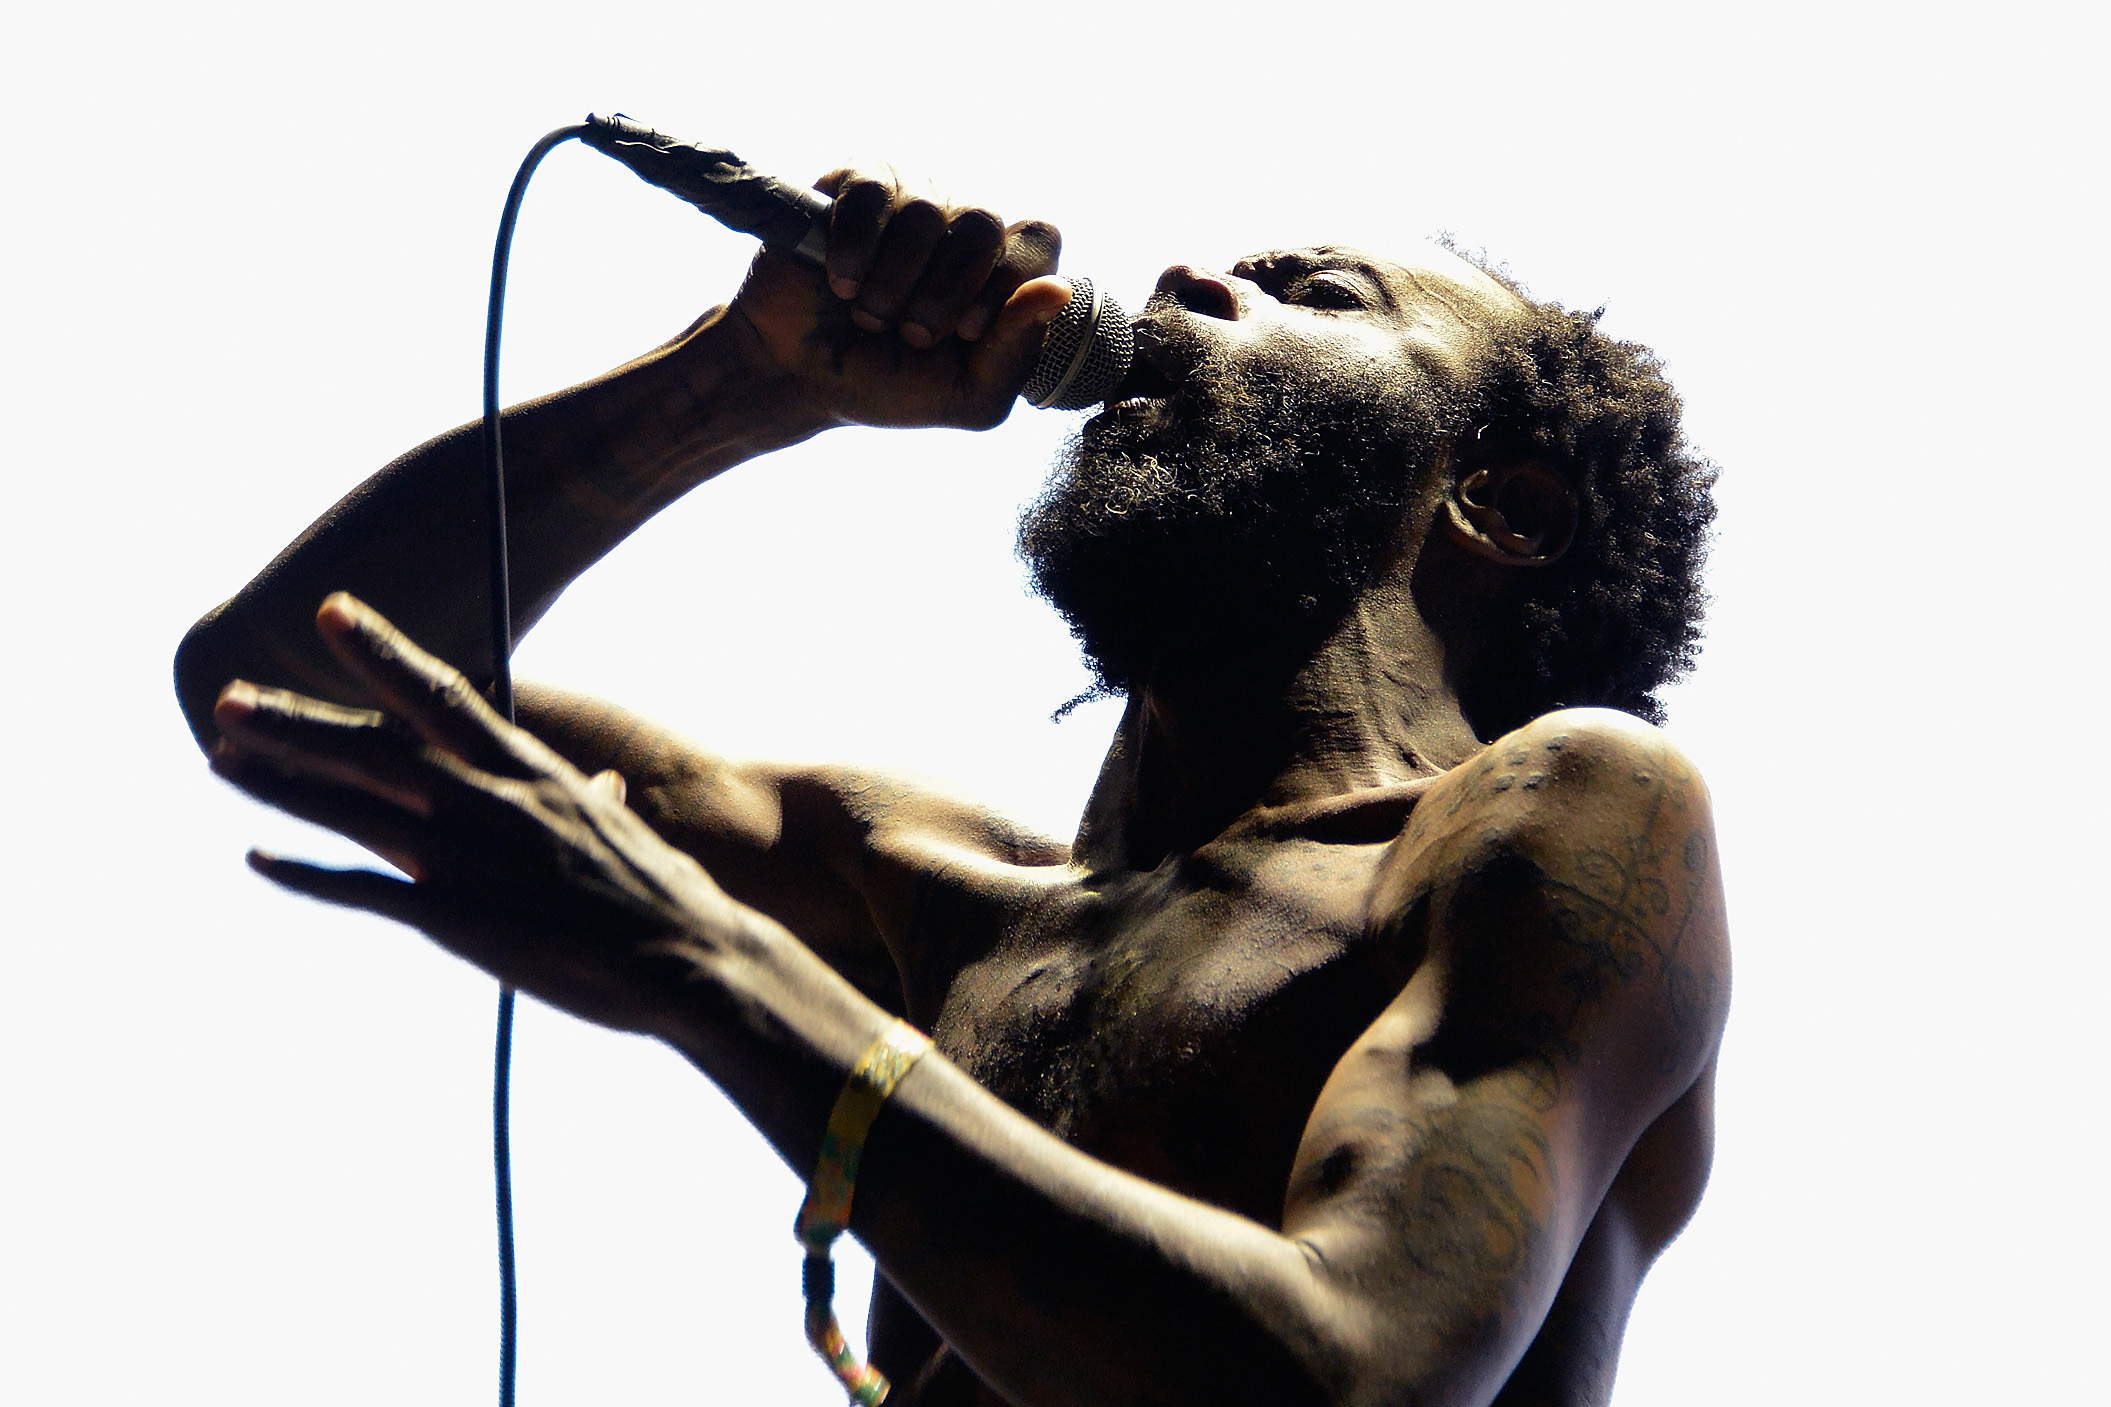 LAKE PERRIS, CA - OCTOBER 14:  MC Ride of Death Grips performs at the 2018 Desert Daze Festival on October 14, 2018 in Lake Perris, California.  (Photo by Chelsea Guglielmino/Getty Images)